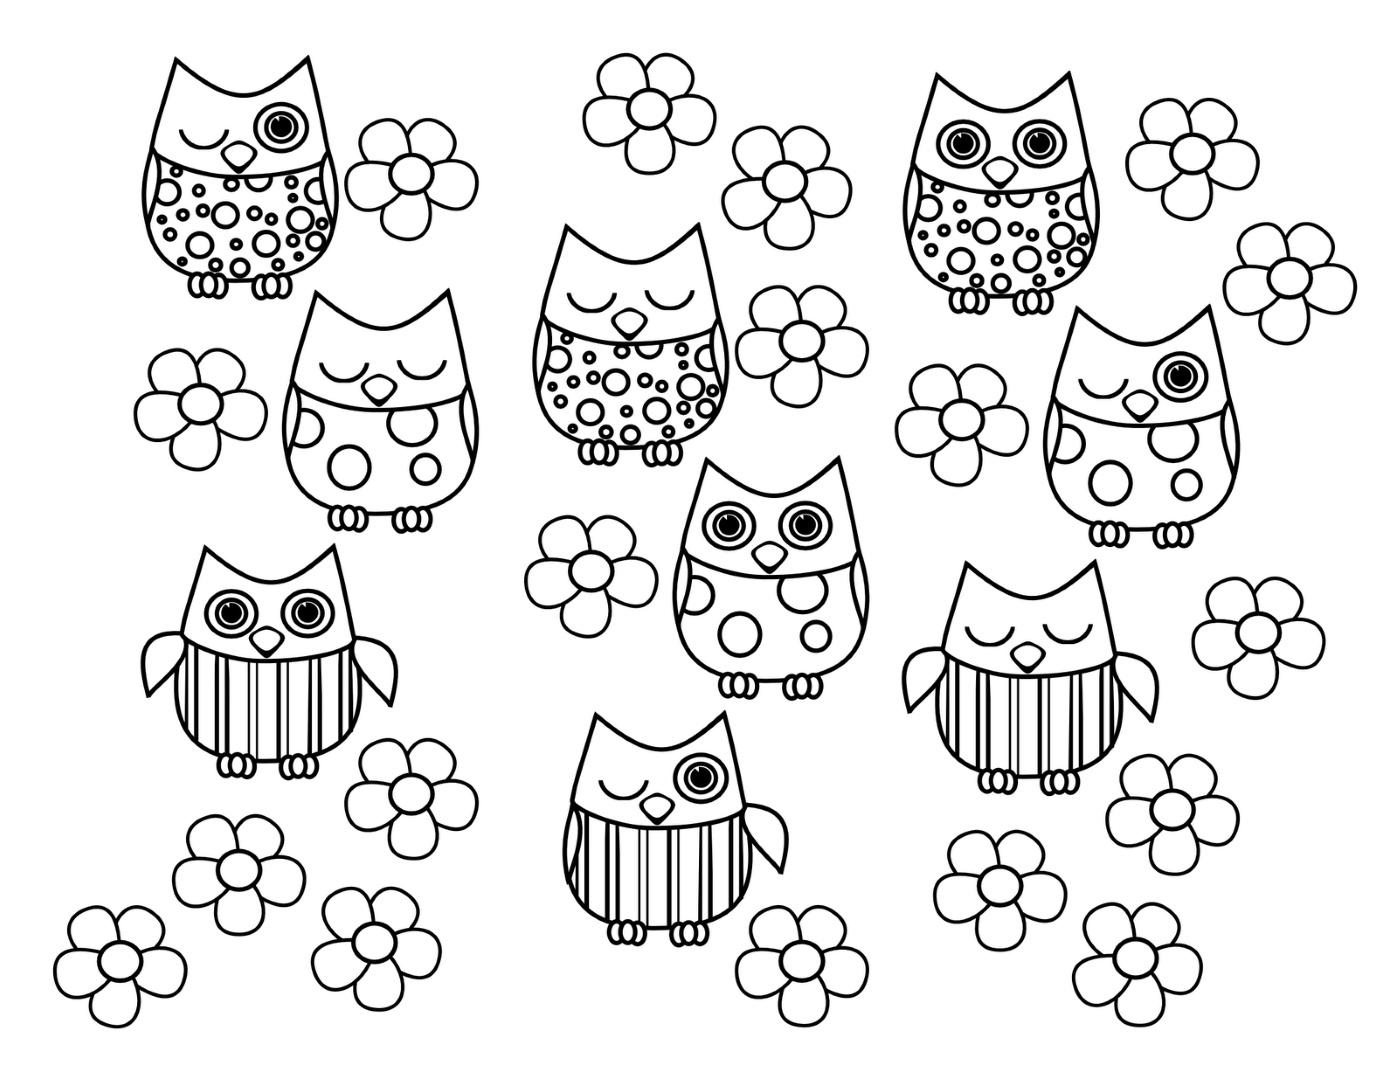 Owl Coloring Pages | Animal Coloring Pages | Owl Coloring